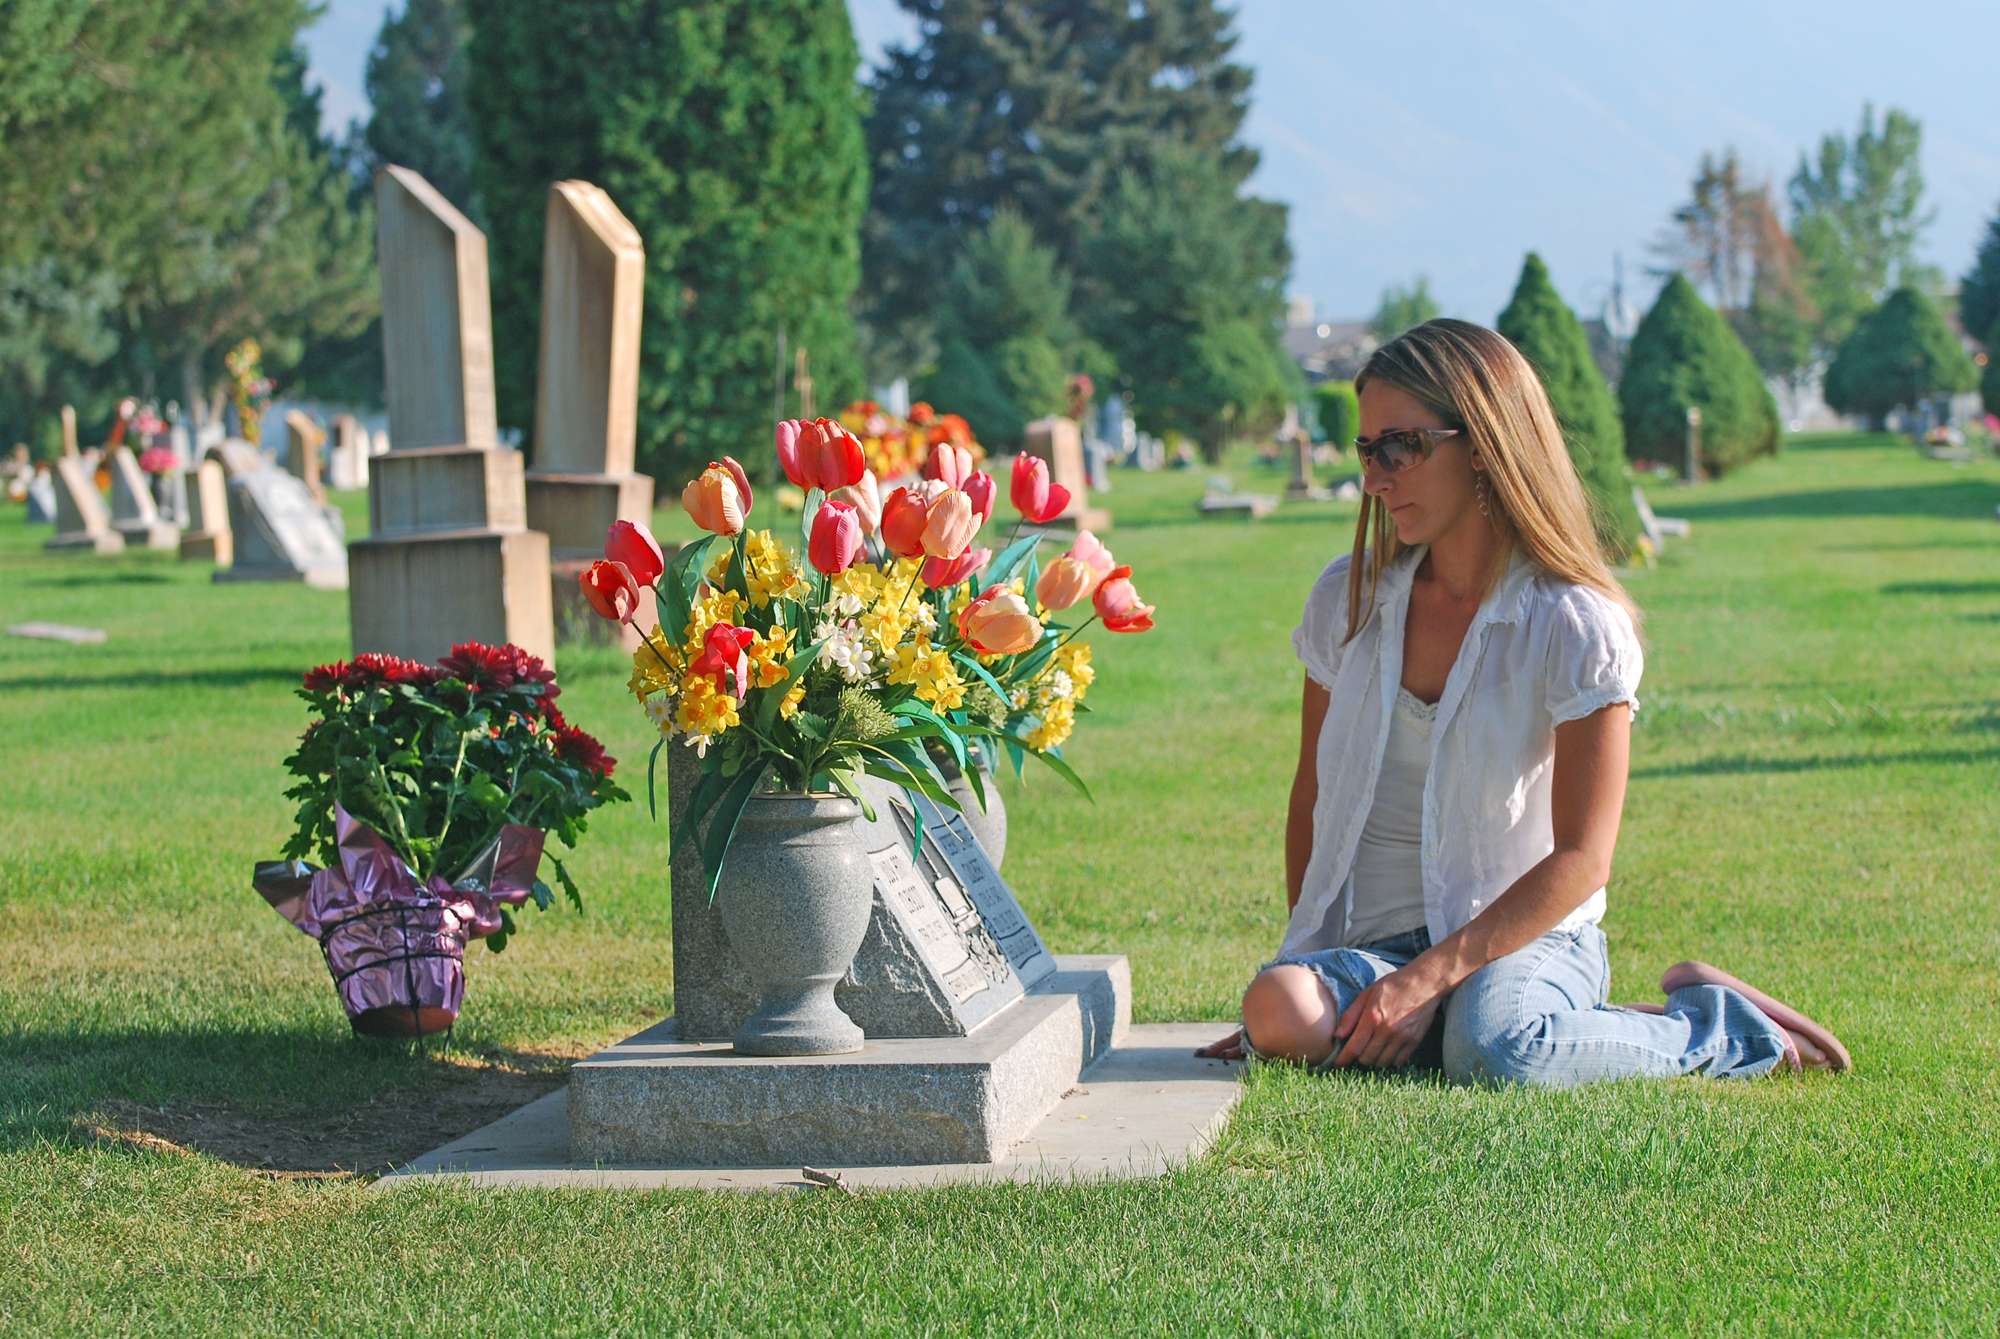 Woman at Grave